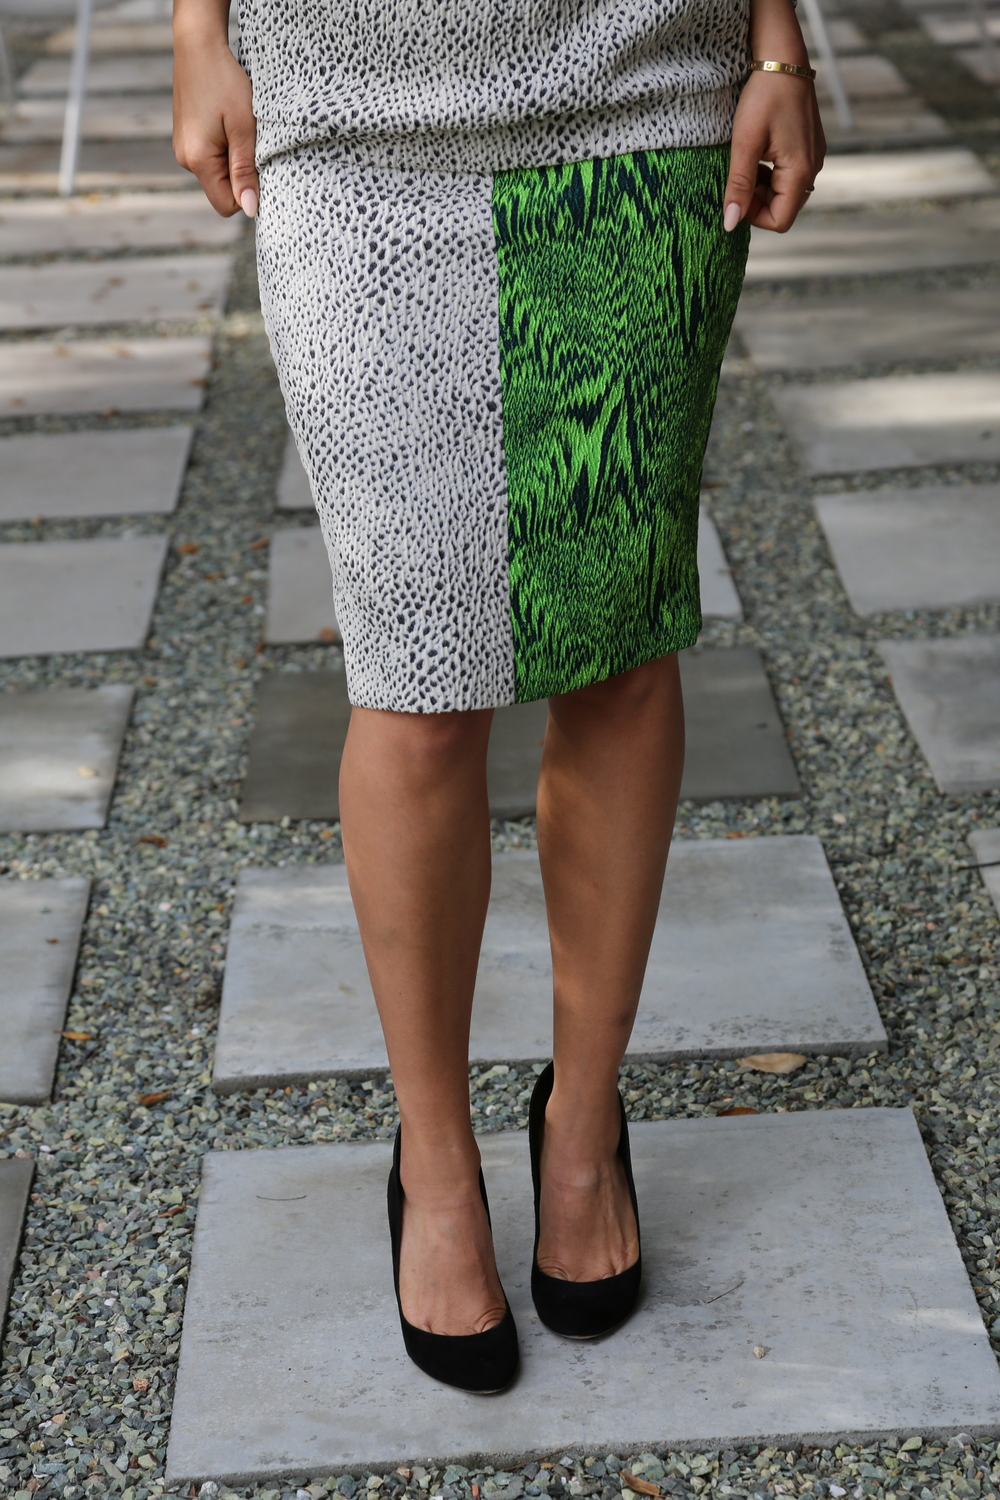 AVELON-PENCIL-SKIRT-BOLD-PRINT-BLACK-GREEN-VANESSA-BELETIC-LOS-ANGELES.JPG